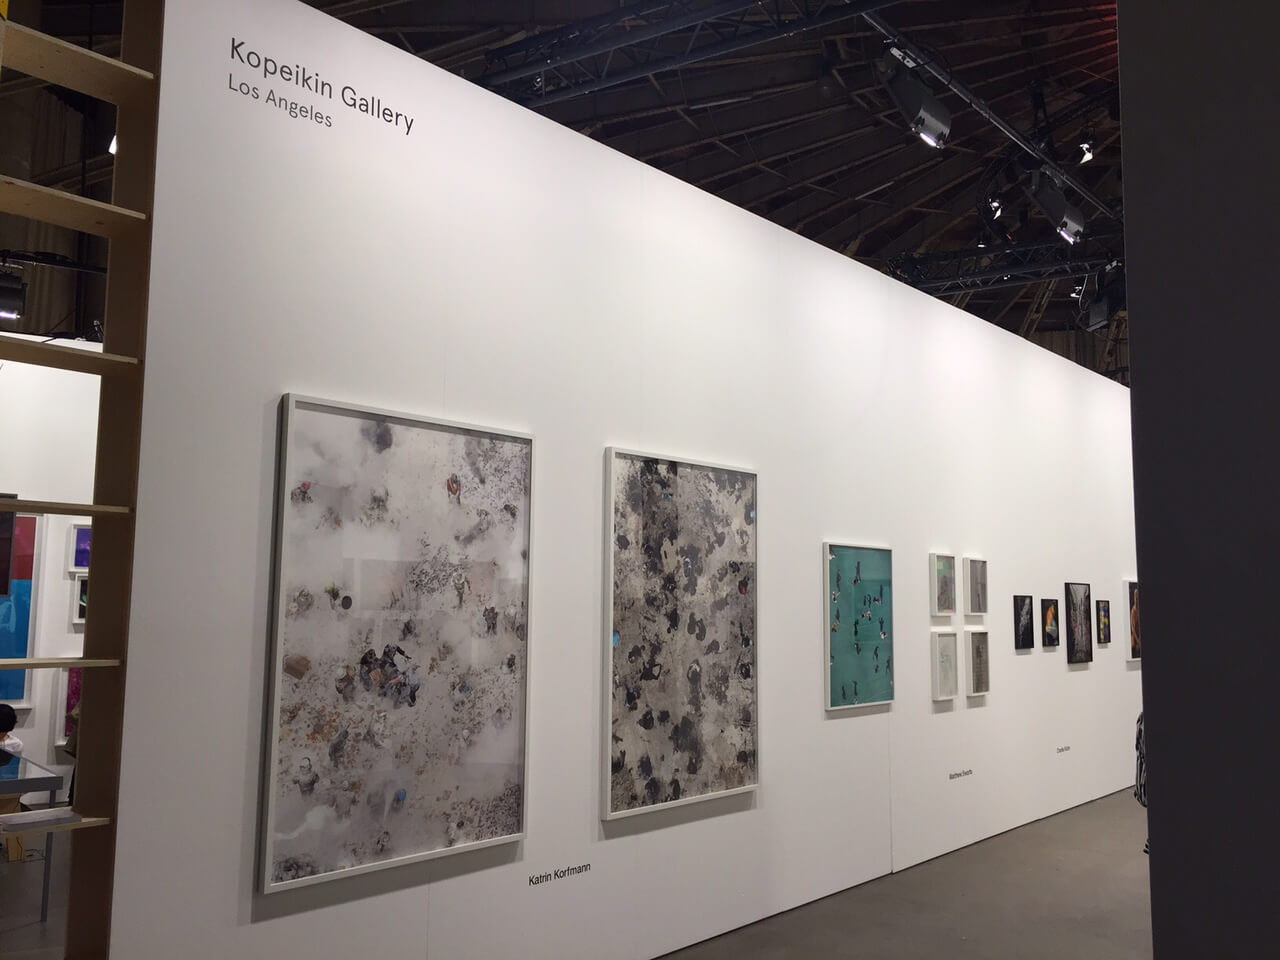 Kopeikin Gallery @ UNSEEN Photo Fair, Amsterdam, The Netherlands.